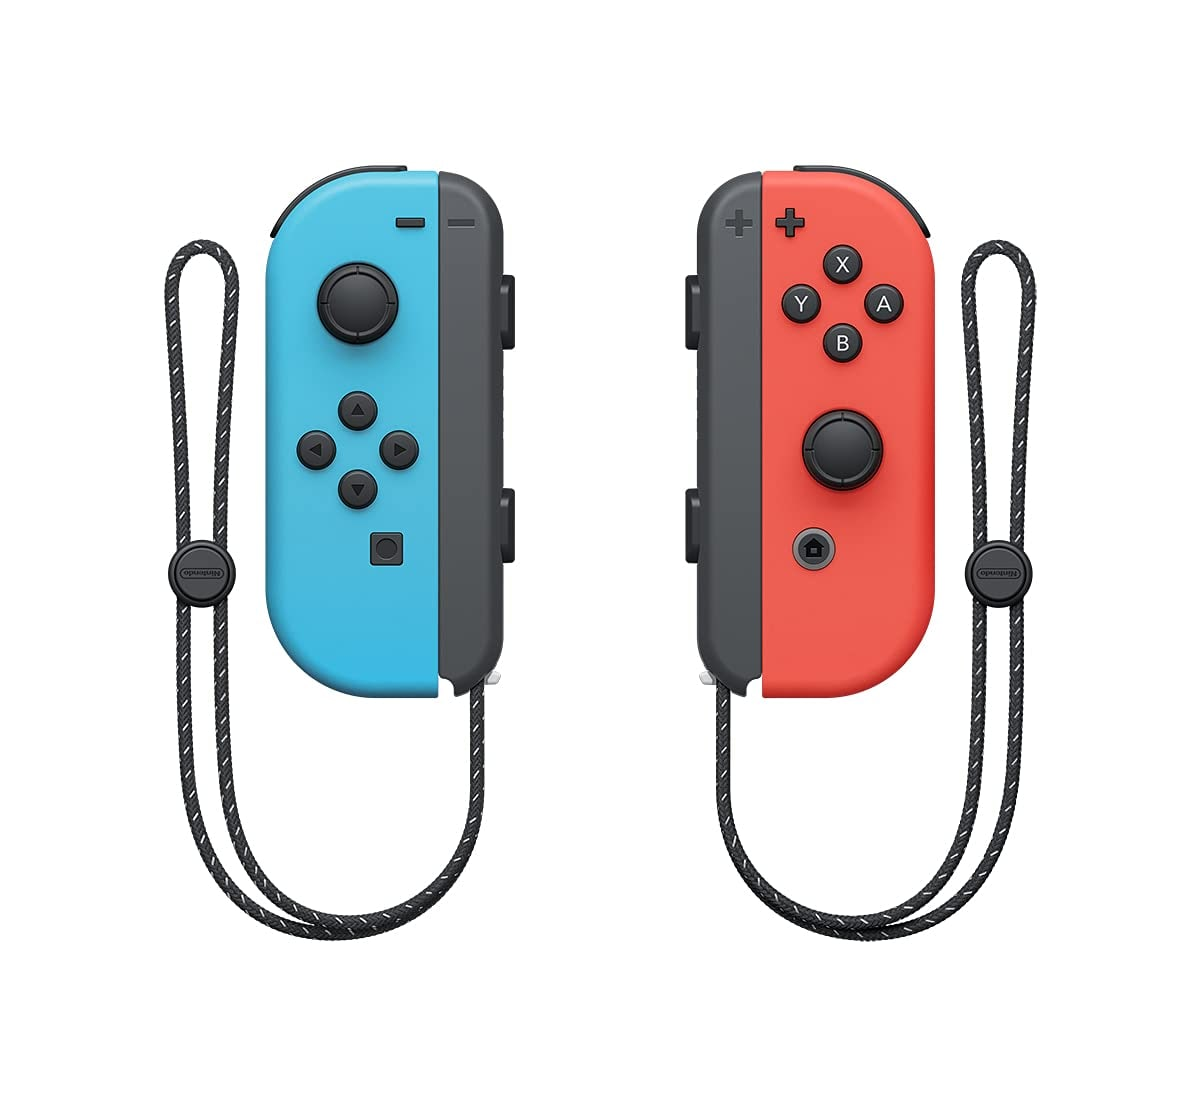 Nintendo Switch OLED Console - Neon Blue/Neon Red - 3